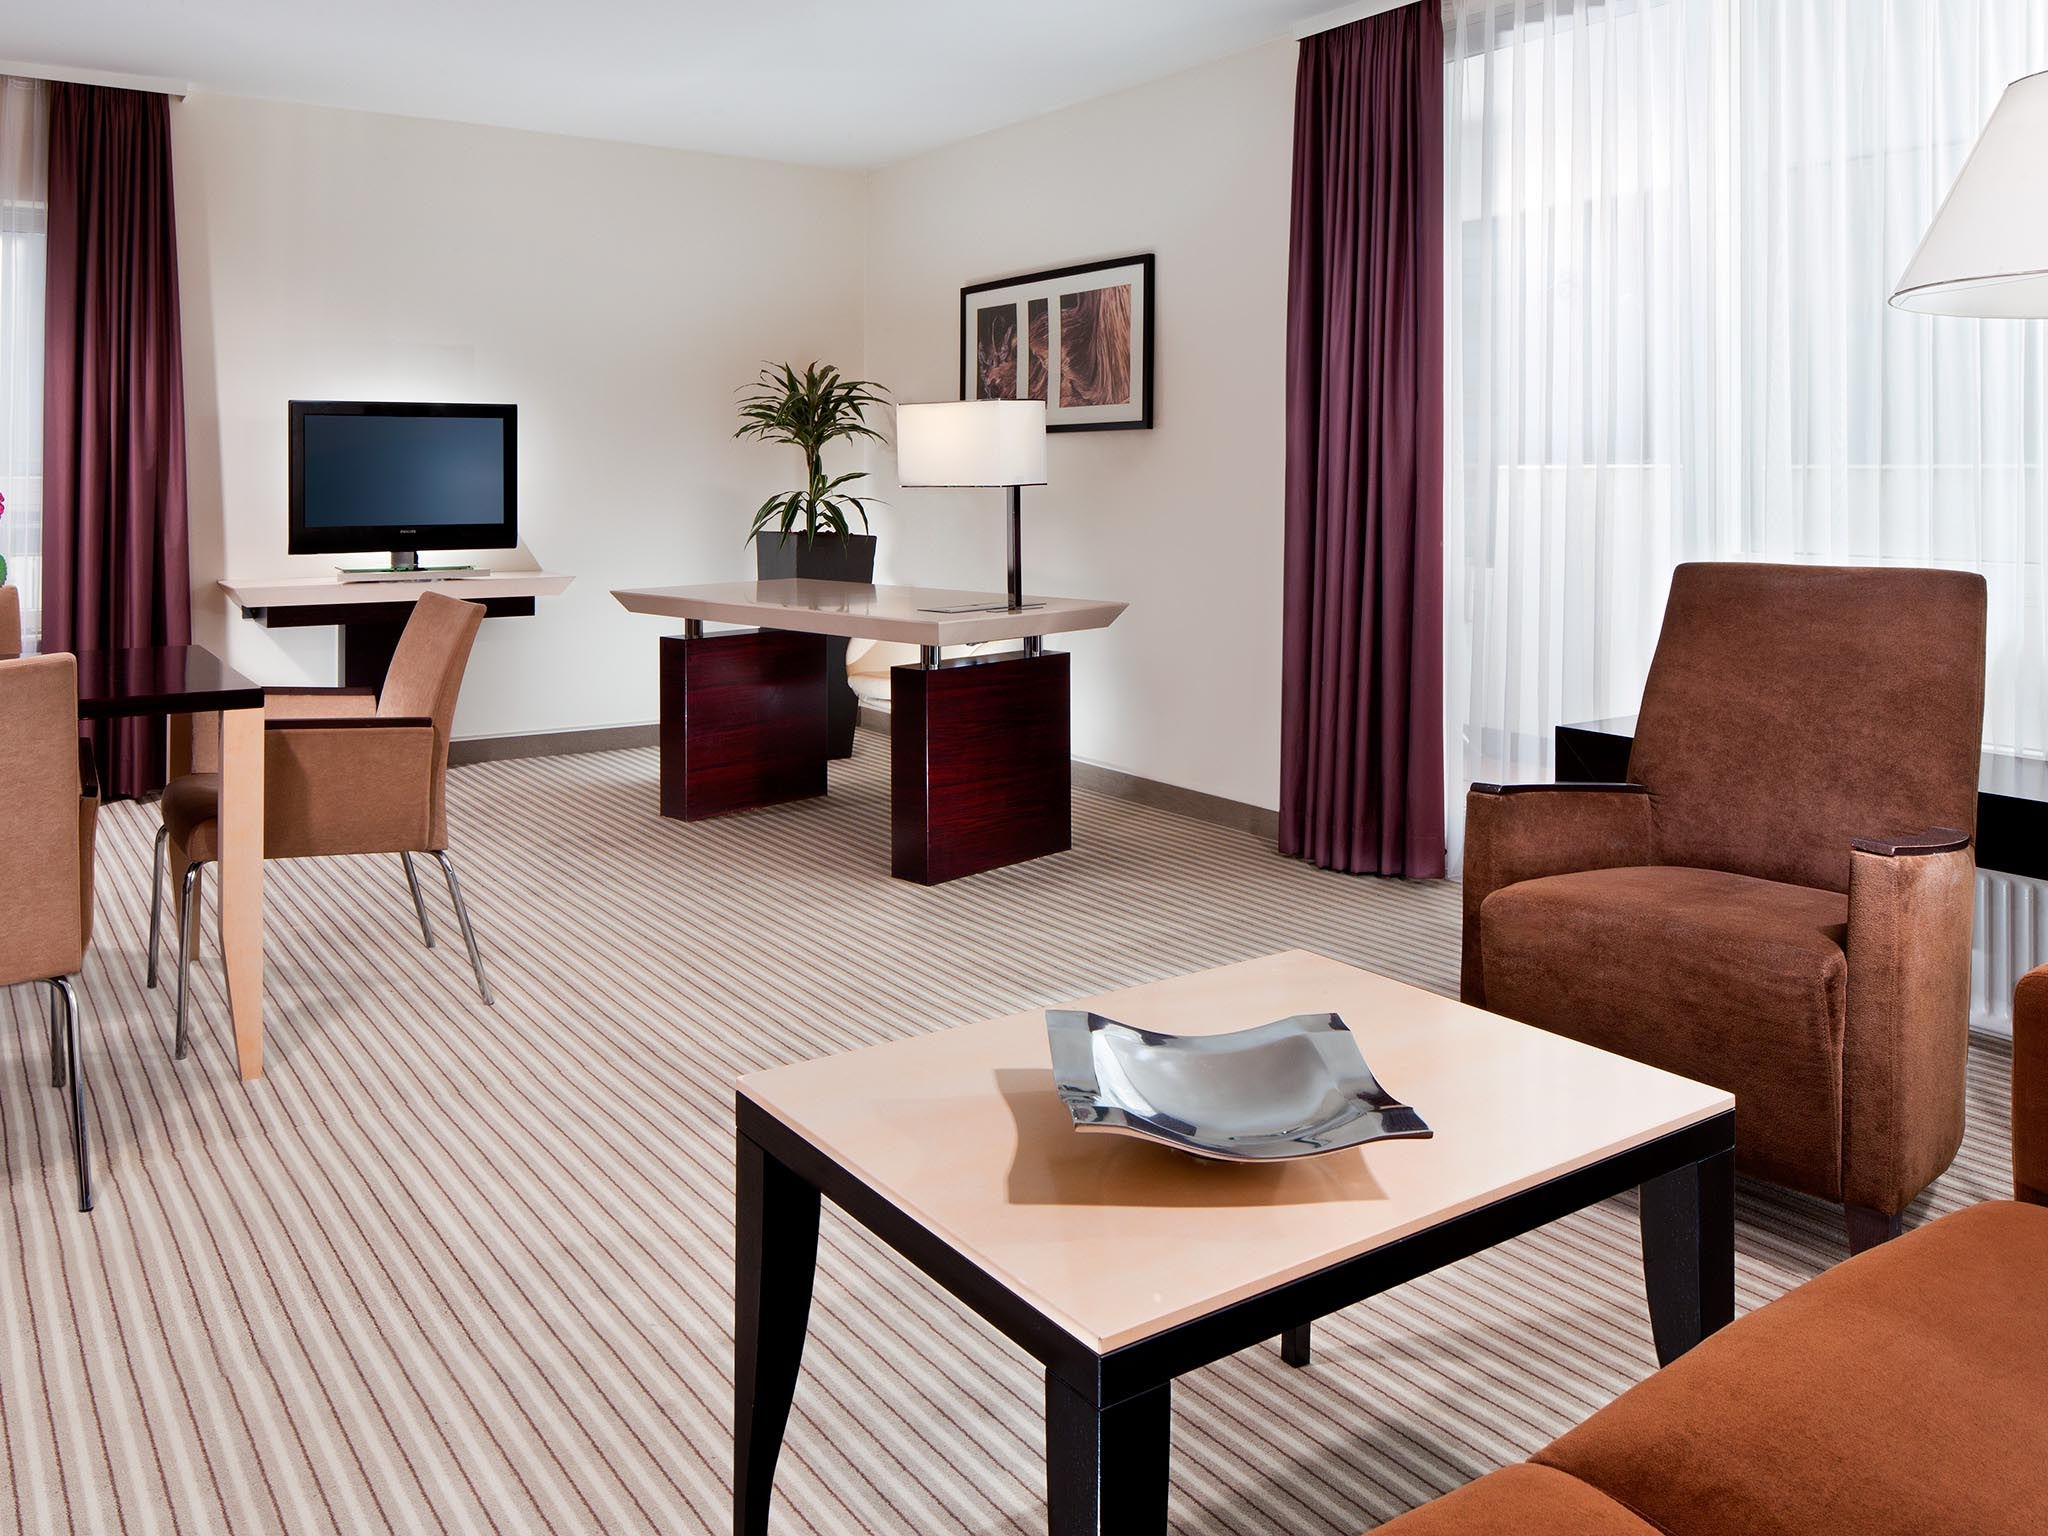 Executive Suite - Sheraton Munich Arabellapark hotel